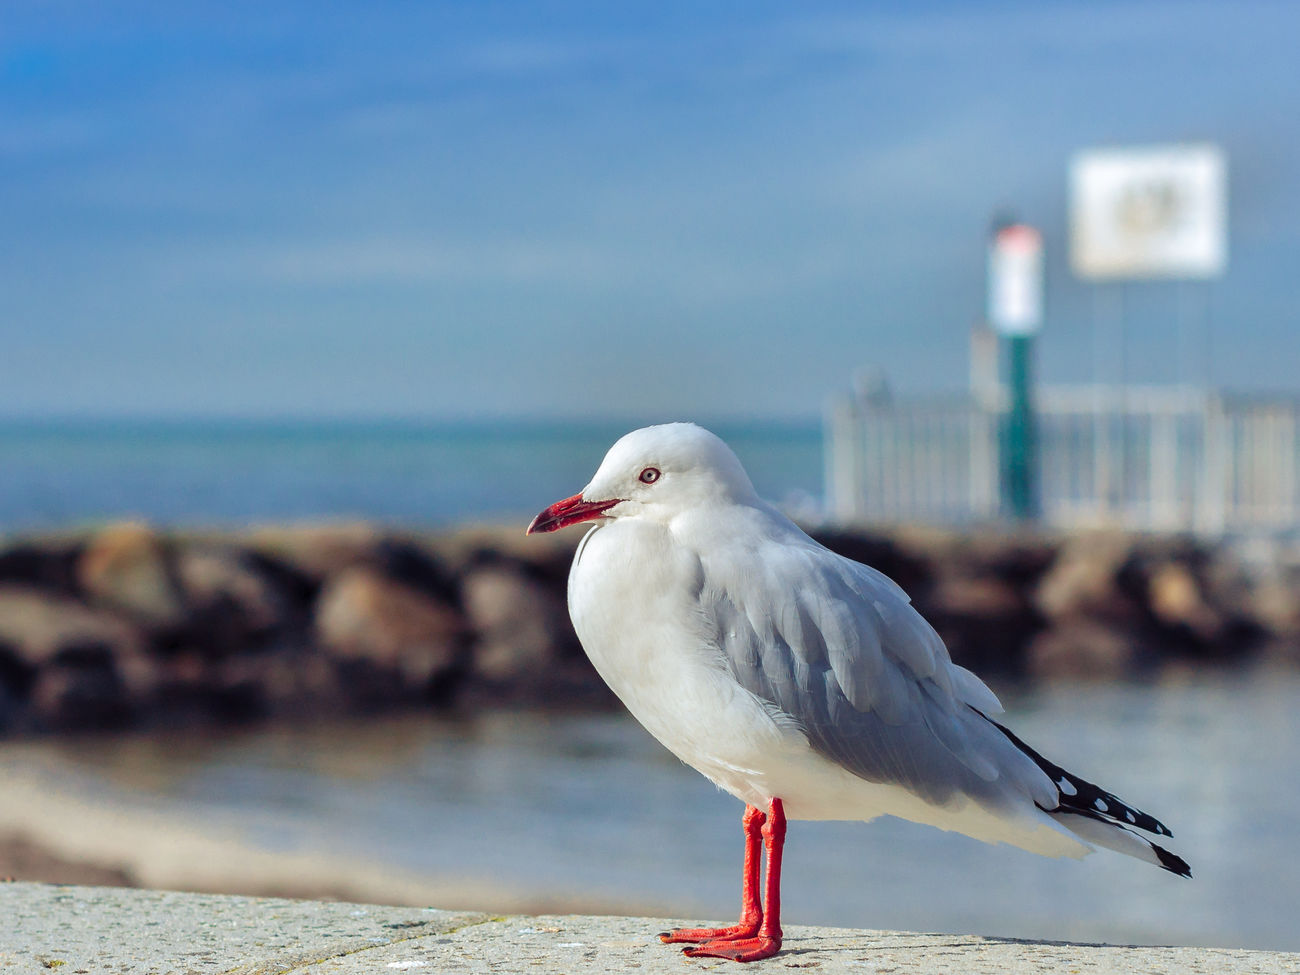 Bird Focus On Foreground No People Outdoors Pier Sea Bird Seagull Seashore White Color